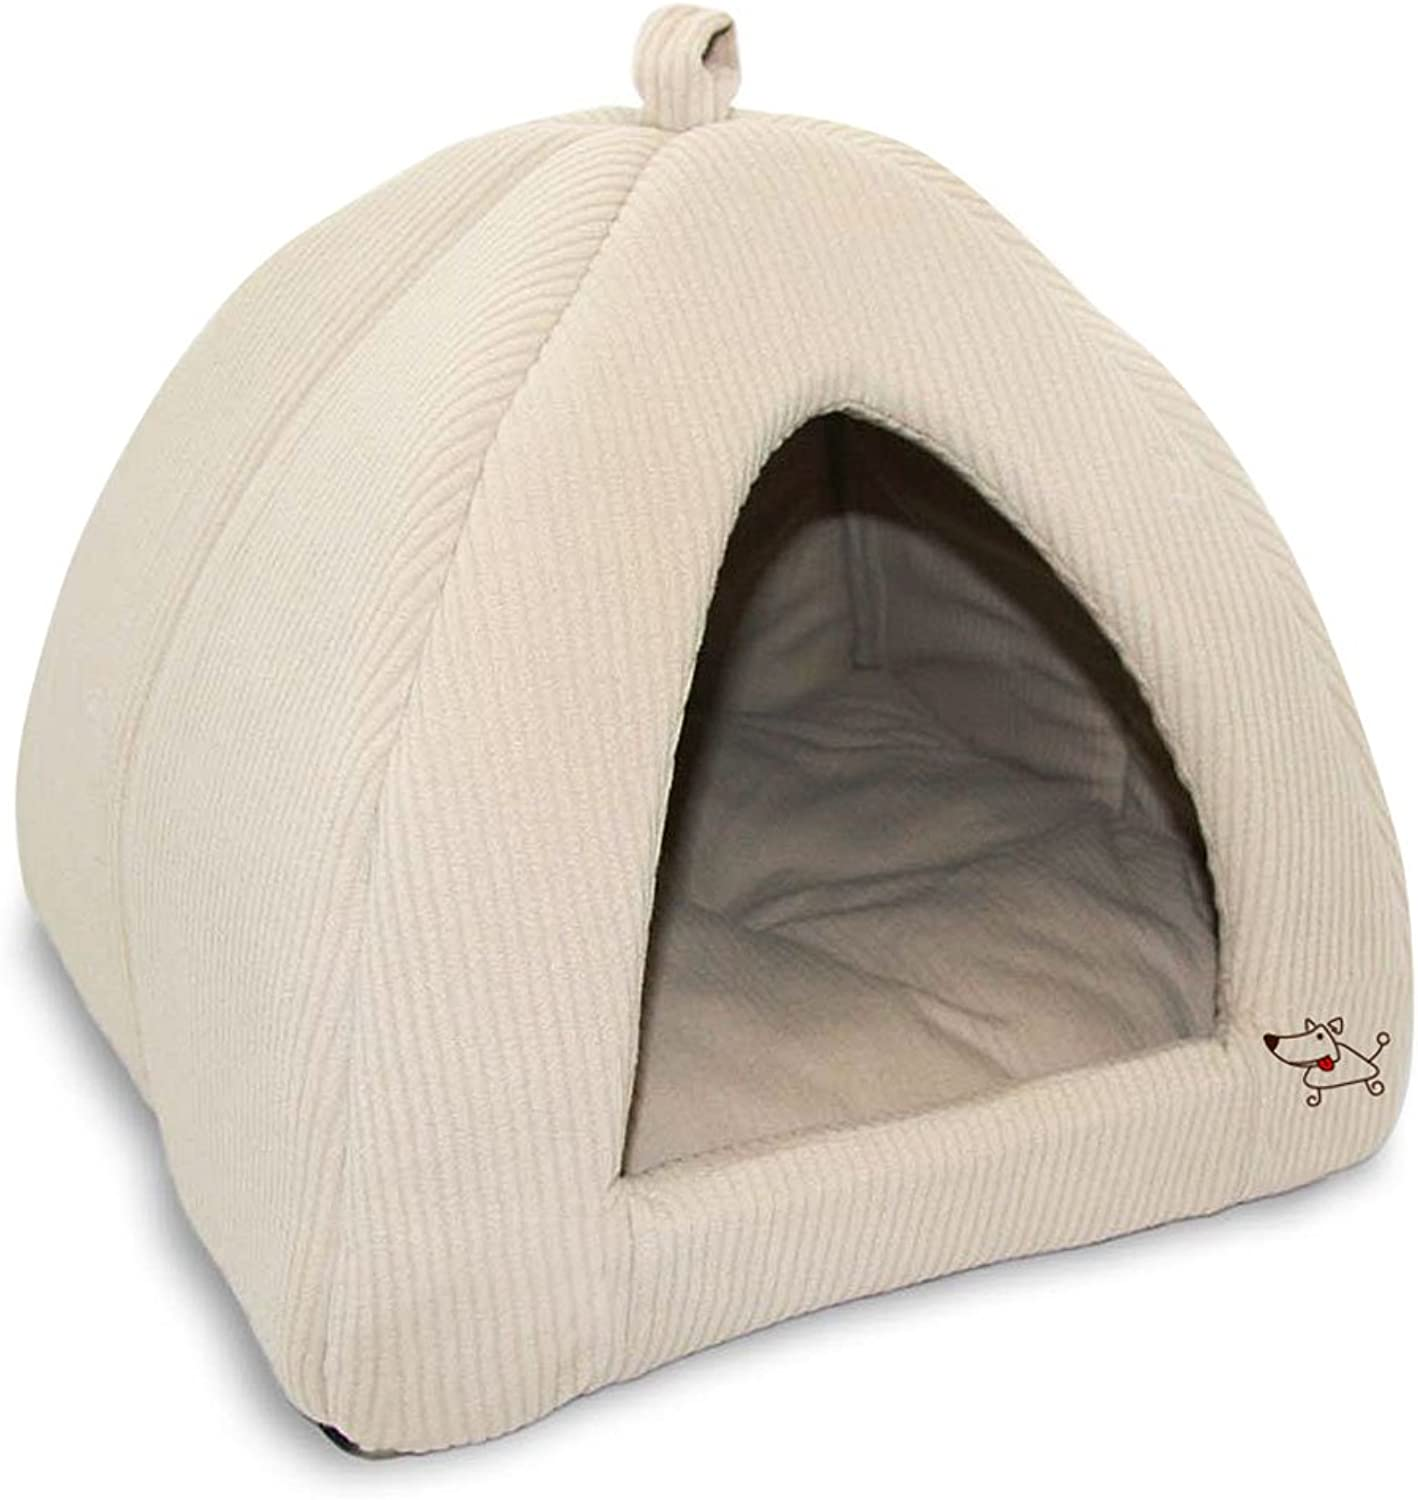 Pet Tent  Soft Bed for Dog and Cat, Best Pet Supplies, Medium, Corduroy Beige